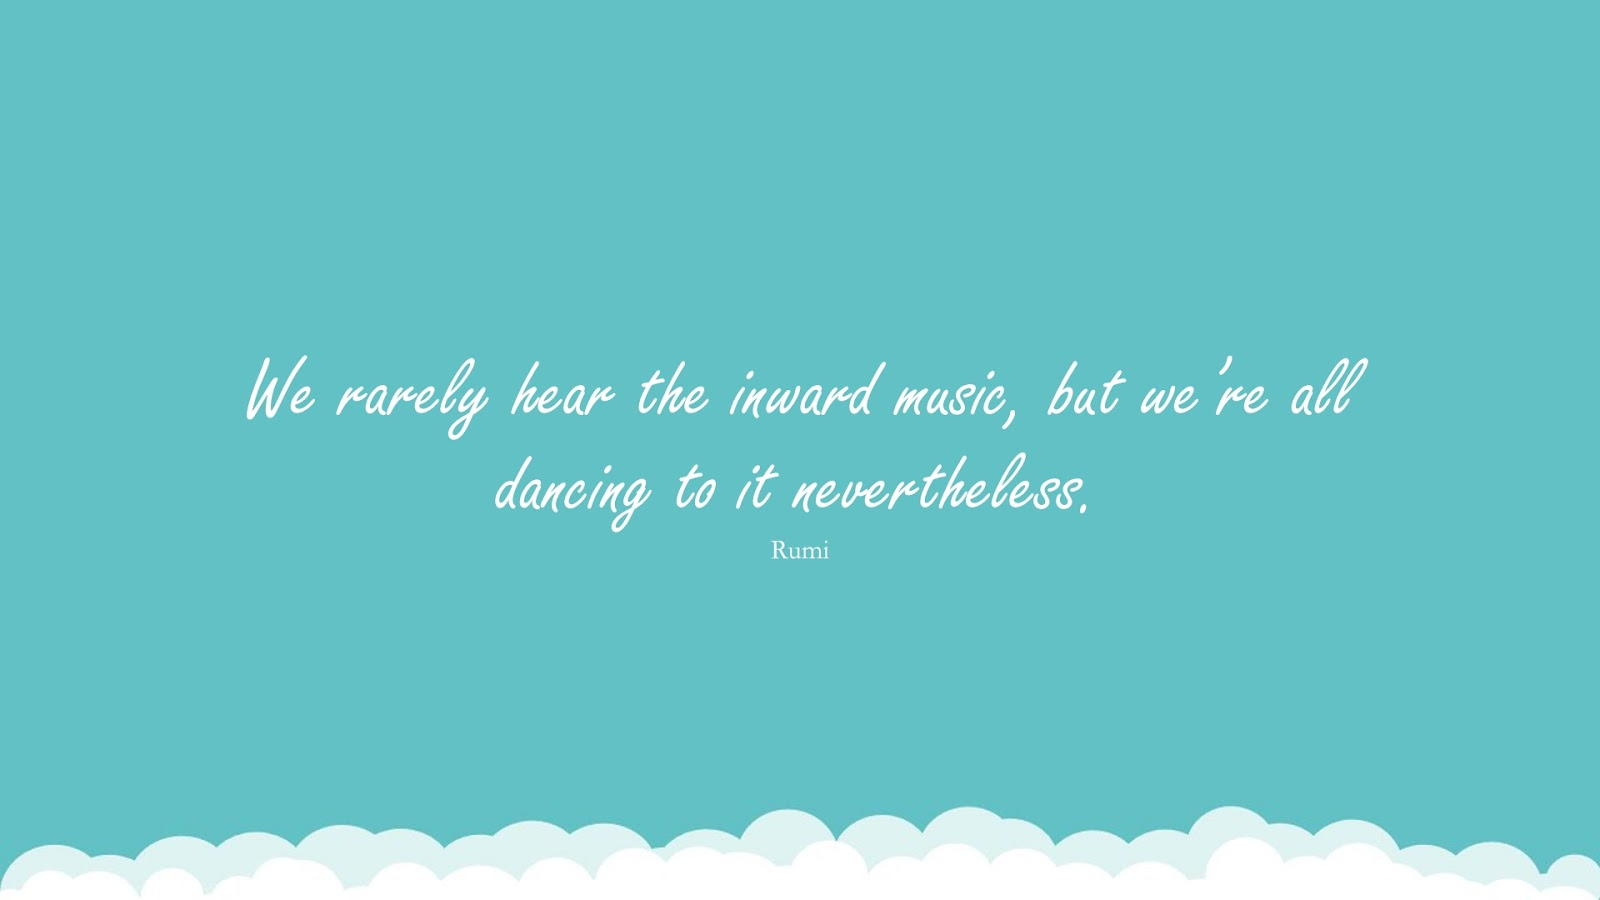 We rarely hear the inward music, but we're all dancing to it nevertheless. (Rumi);  #RumiQuotes